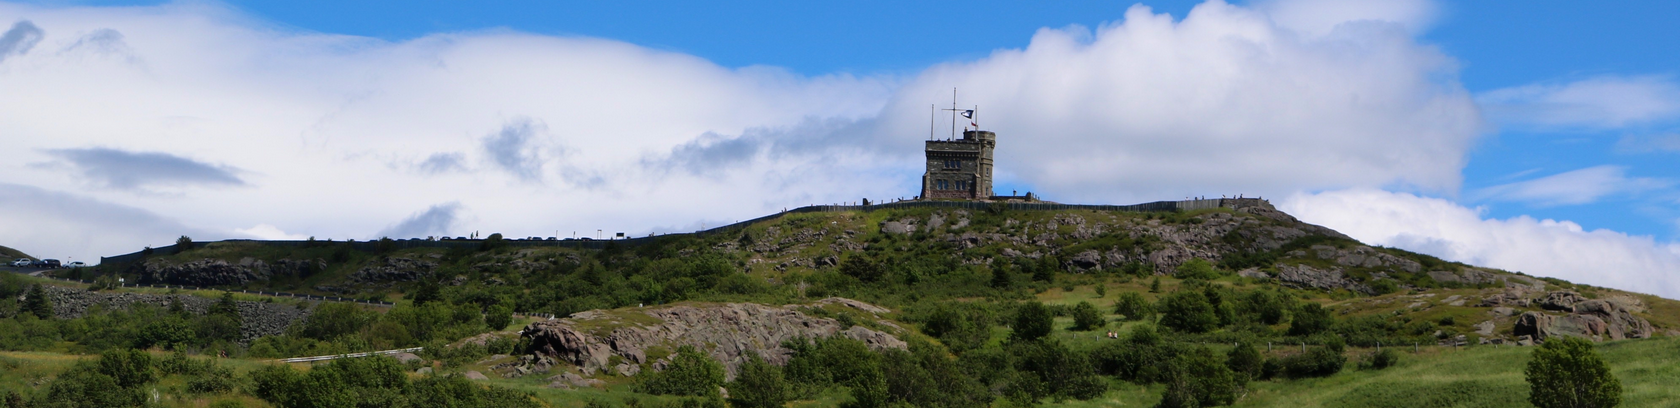 Cabot Tower, NL